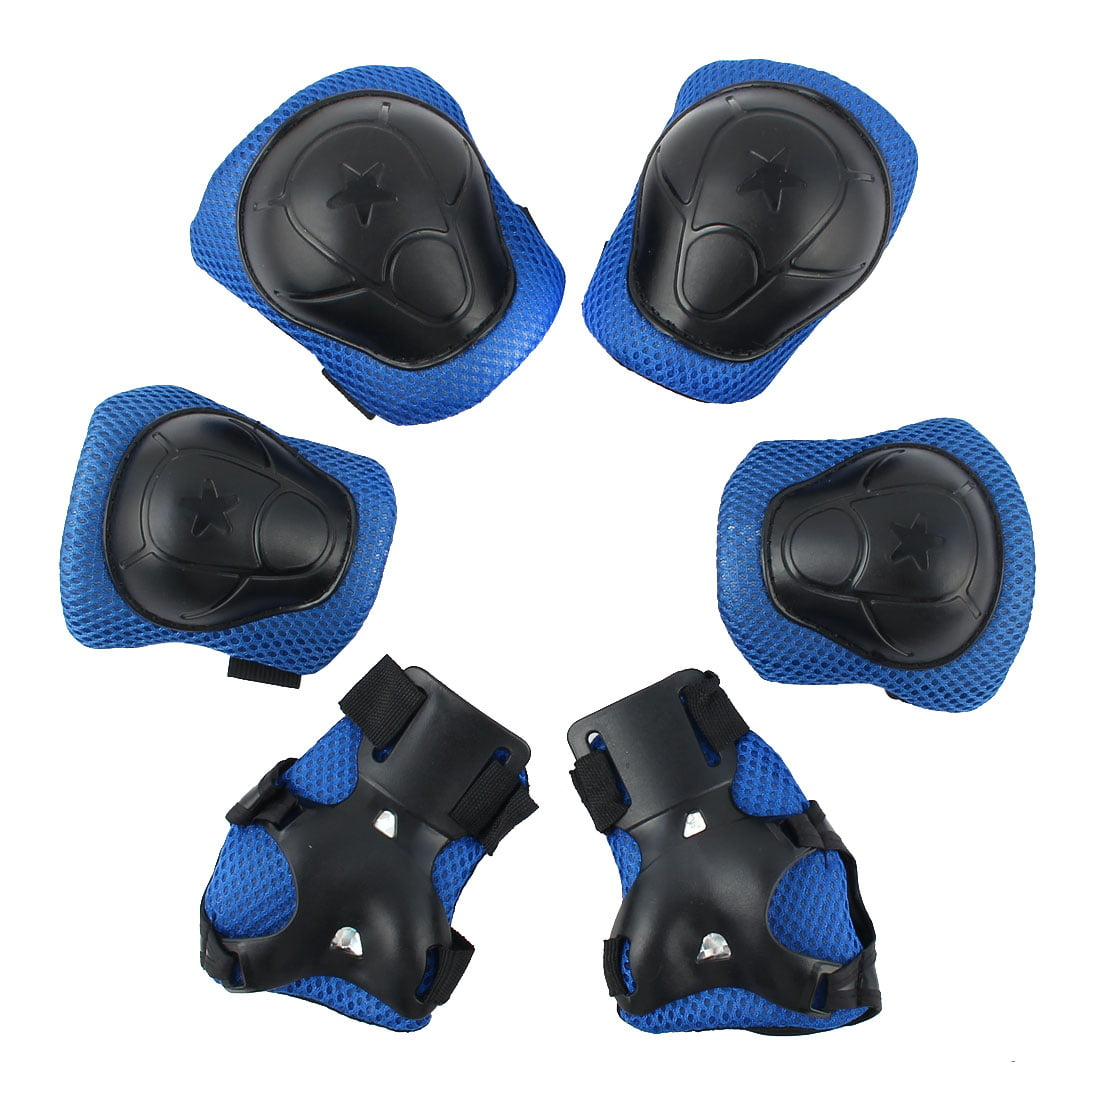 6pcs Skiing Skating Protetive Gear Wrist Guards Knee Elbow Pads Protector Set For Kids by Unique-Bargains